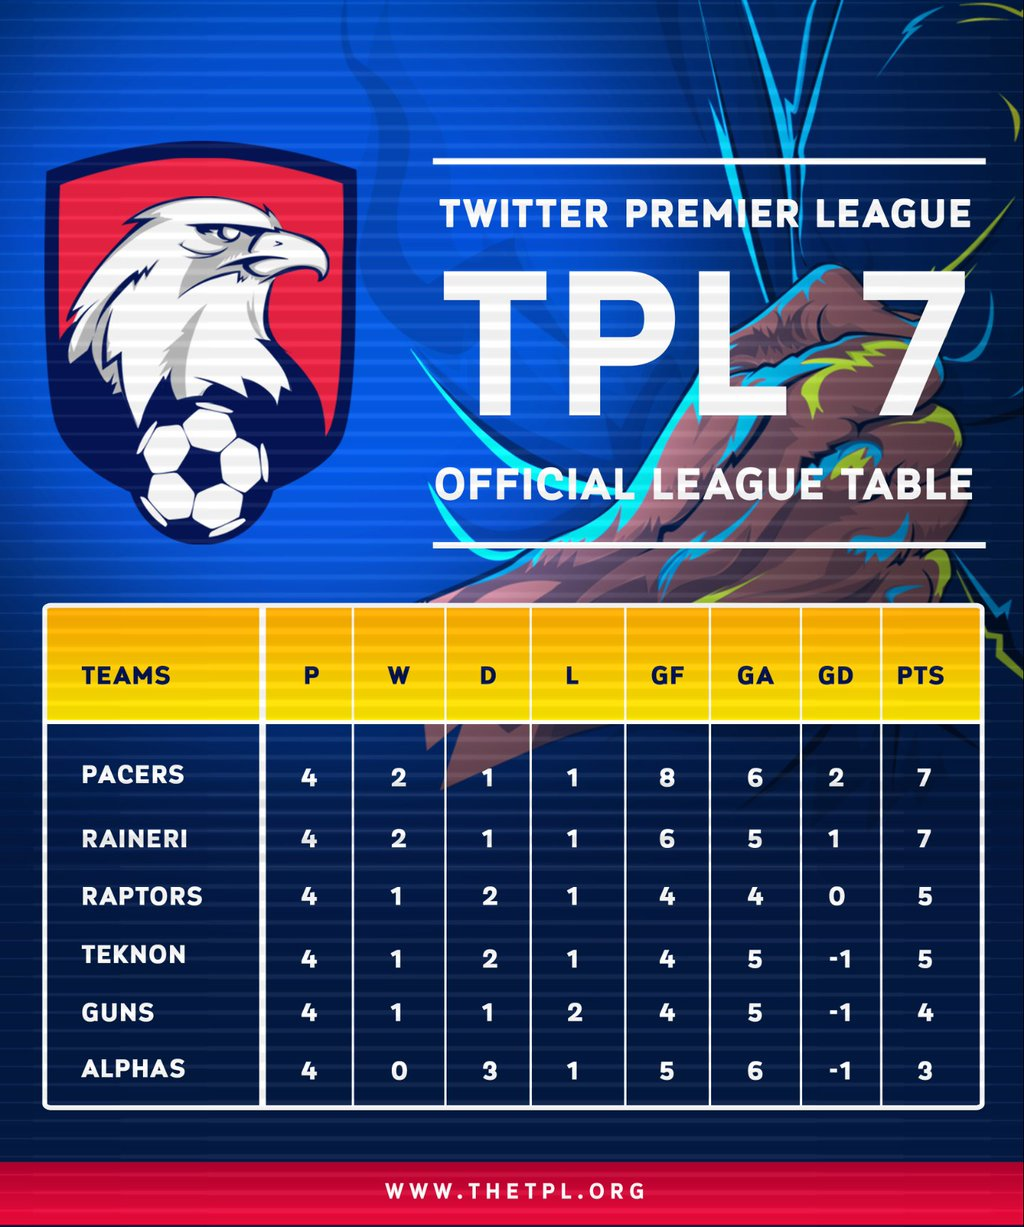 official league table for TPL 7